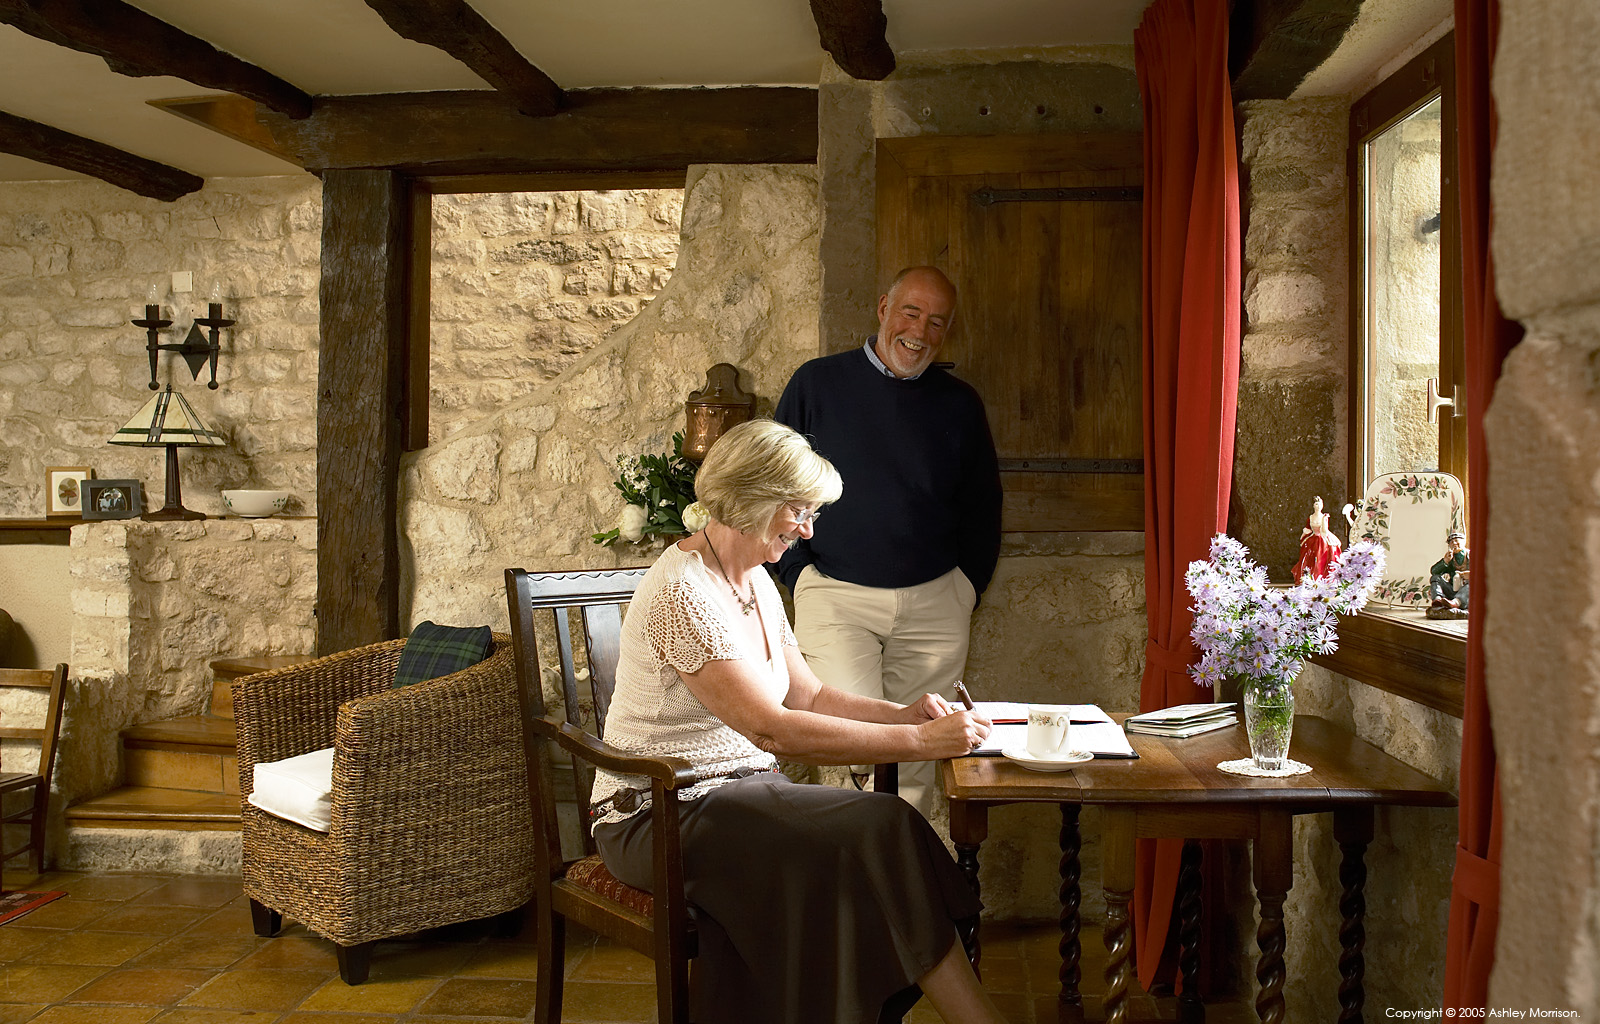 Angela and John Goodwin in their 15th century Manoir or Tower house near the medieval hill village of Cordes sur ciel in the French Tarn region.